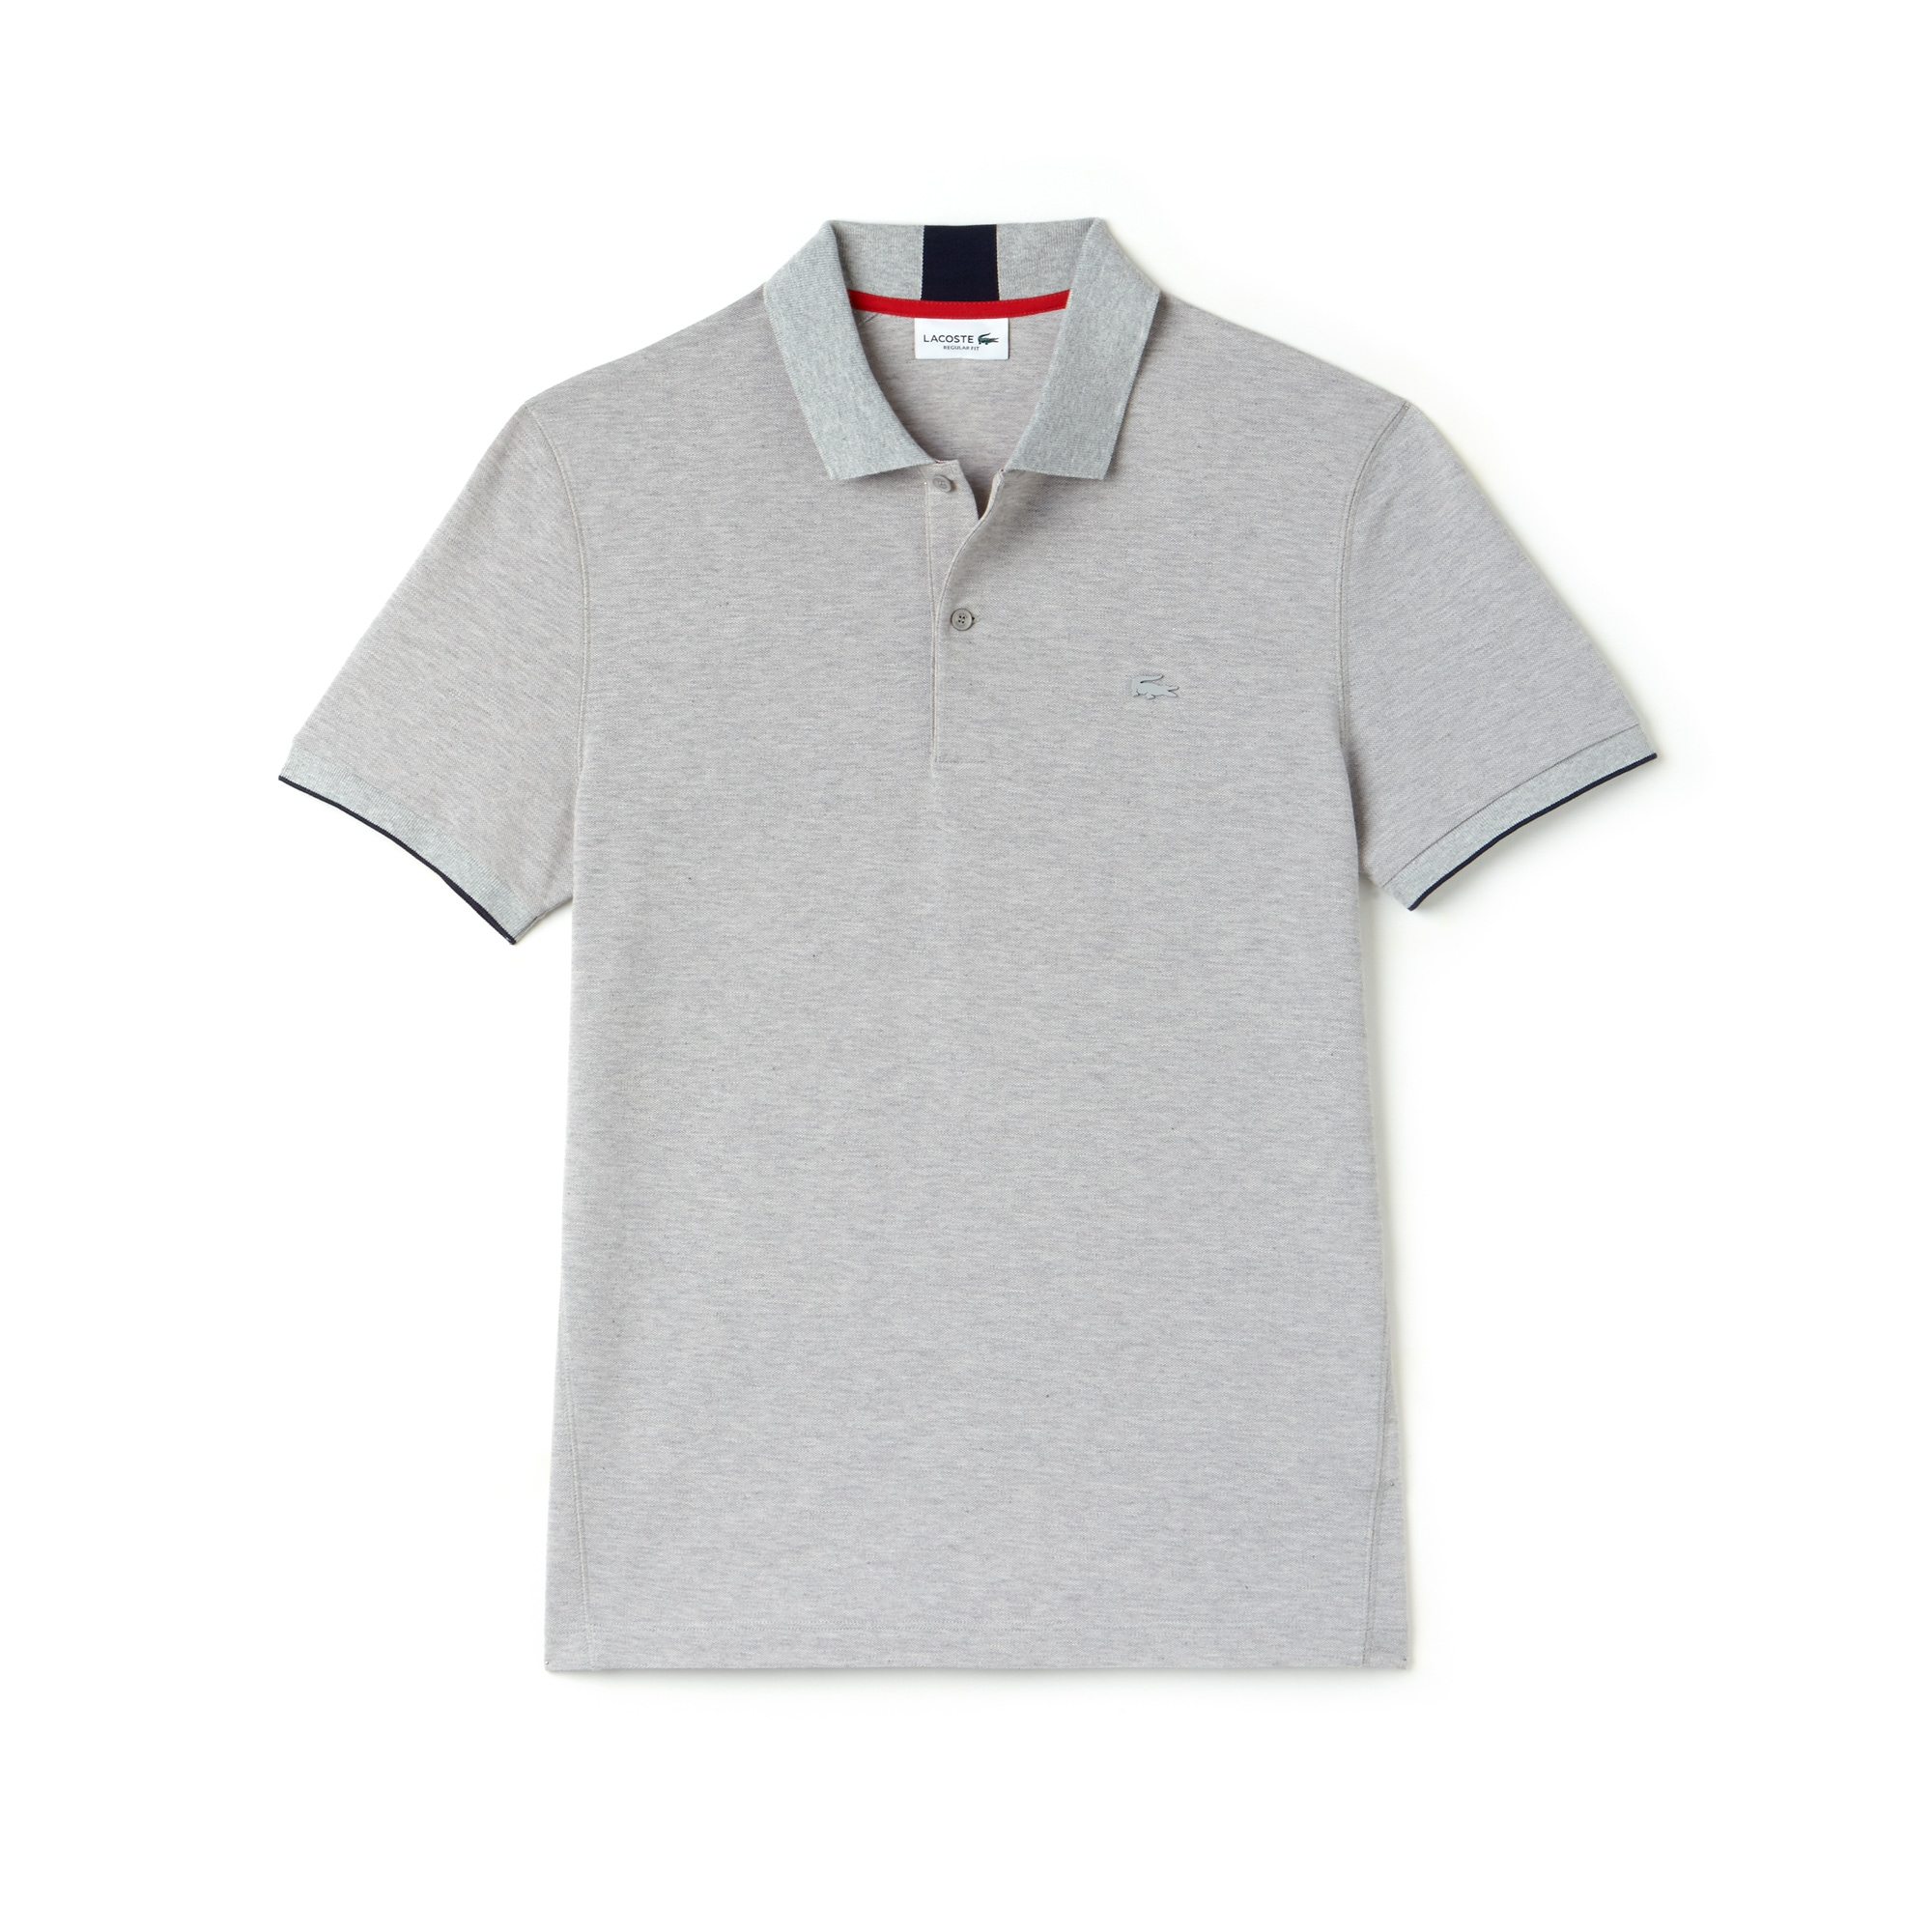 라코스테 Lacoste Mens Motion Regular Fit Technical Petit Pique Polo,pluvier chine/navy blue-p